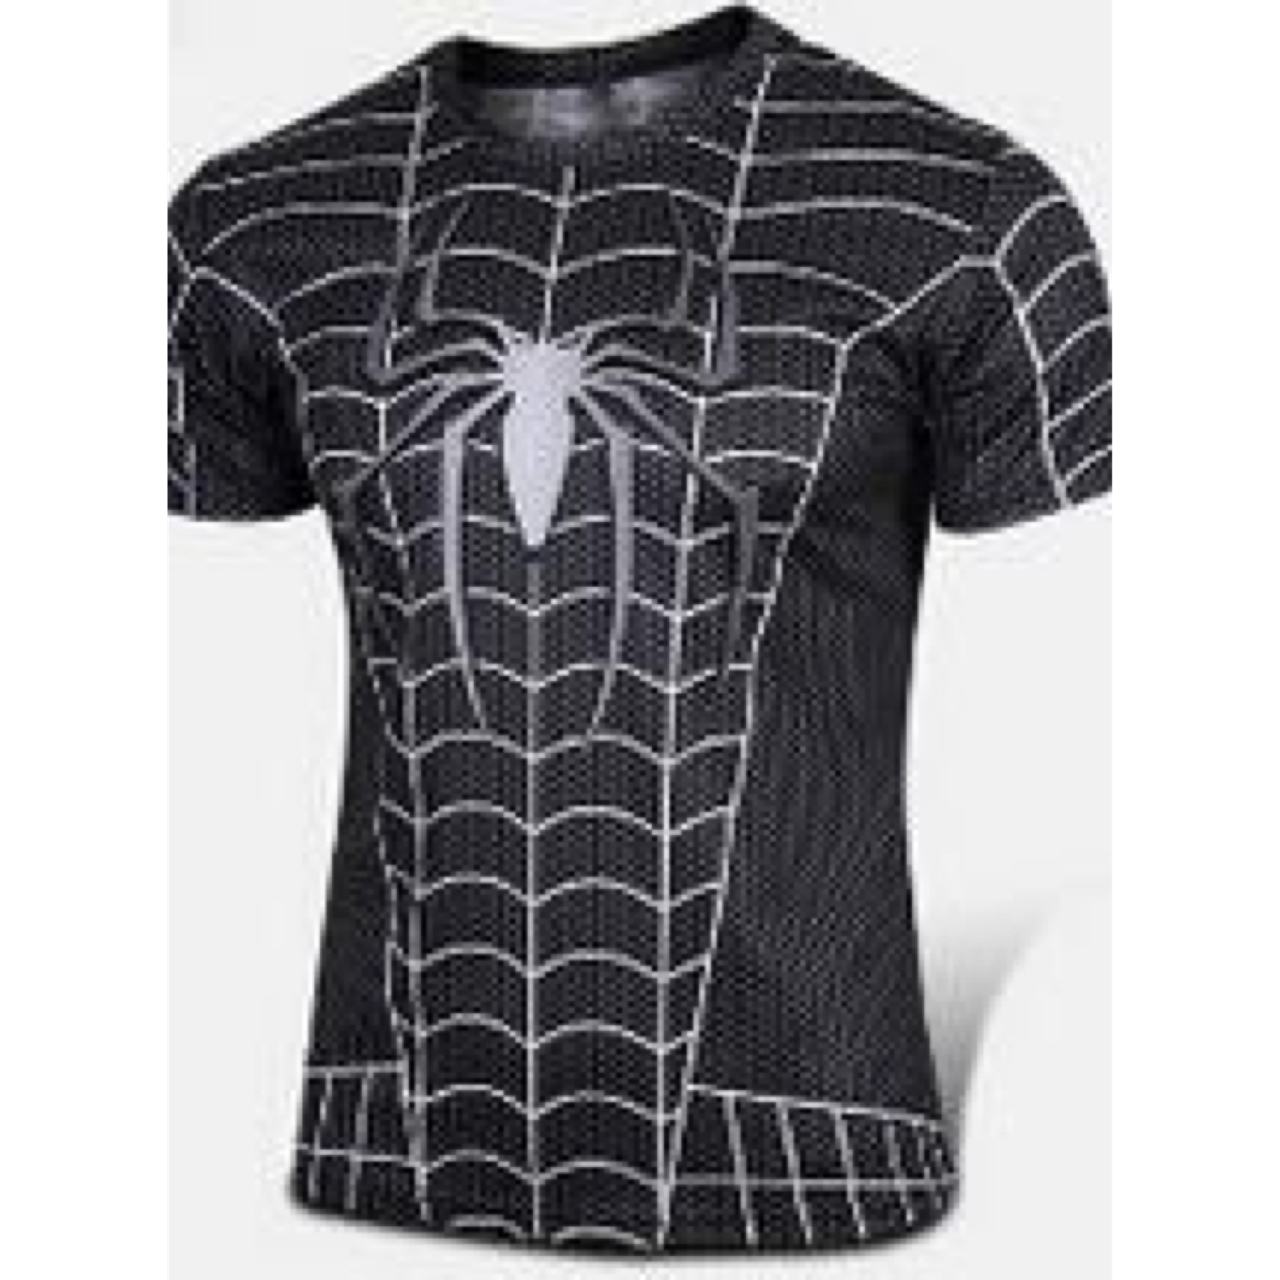 Kaos Superhero Spiderman Black Dewasa